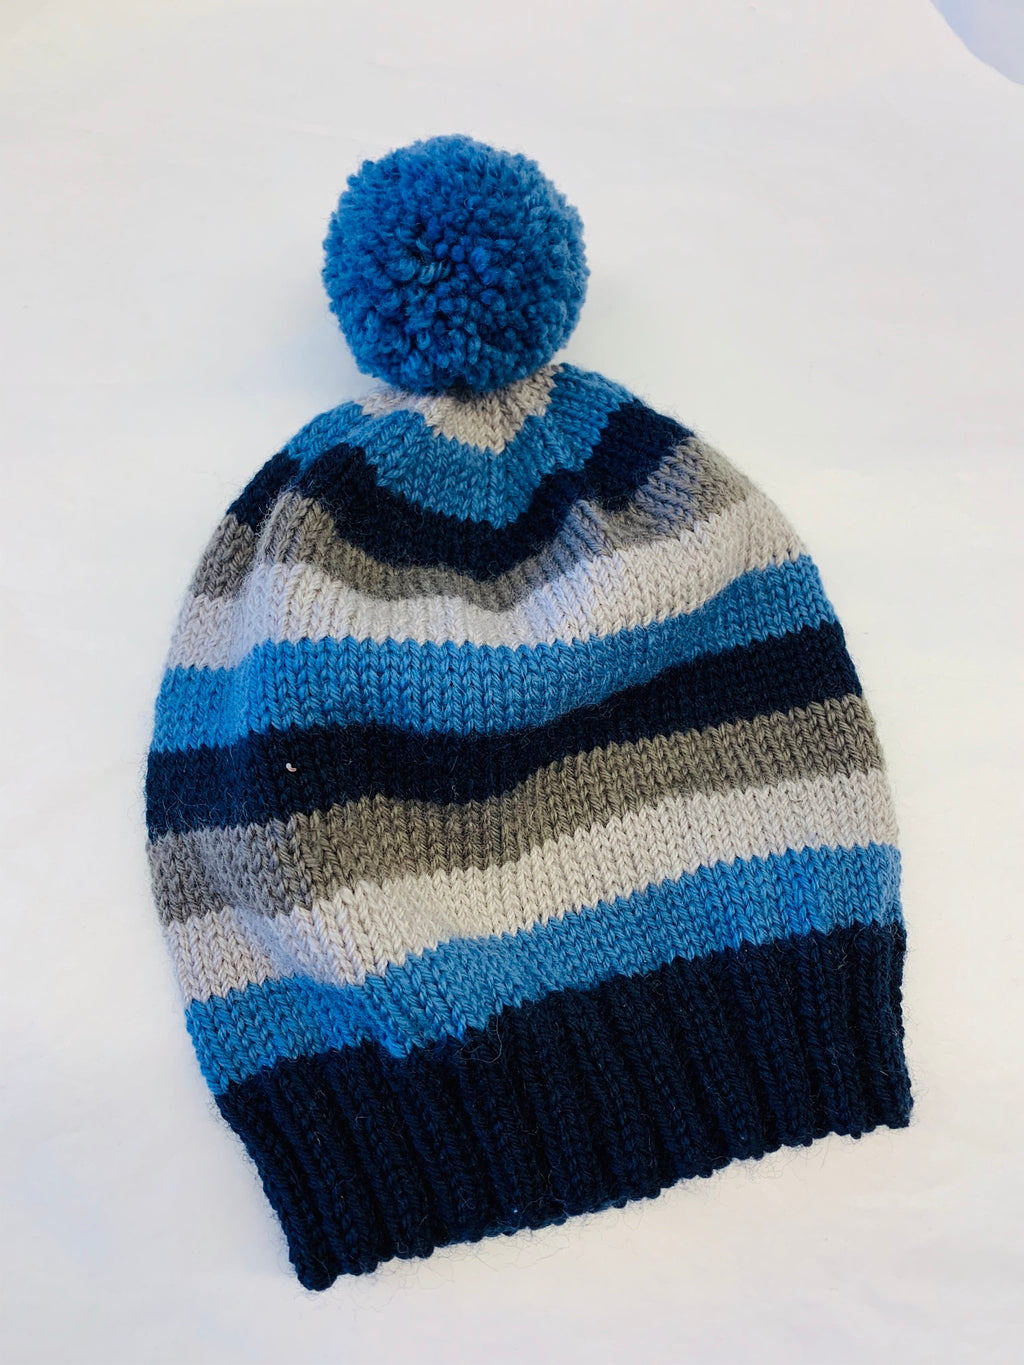 Wool beanie with pom pom: stripes